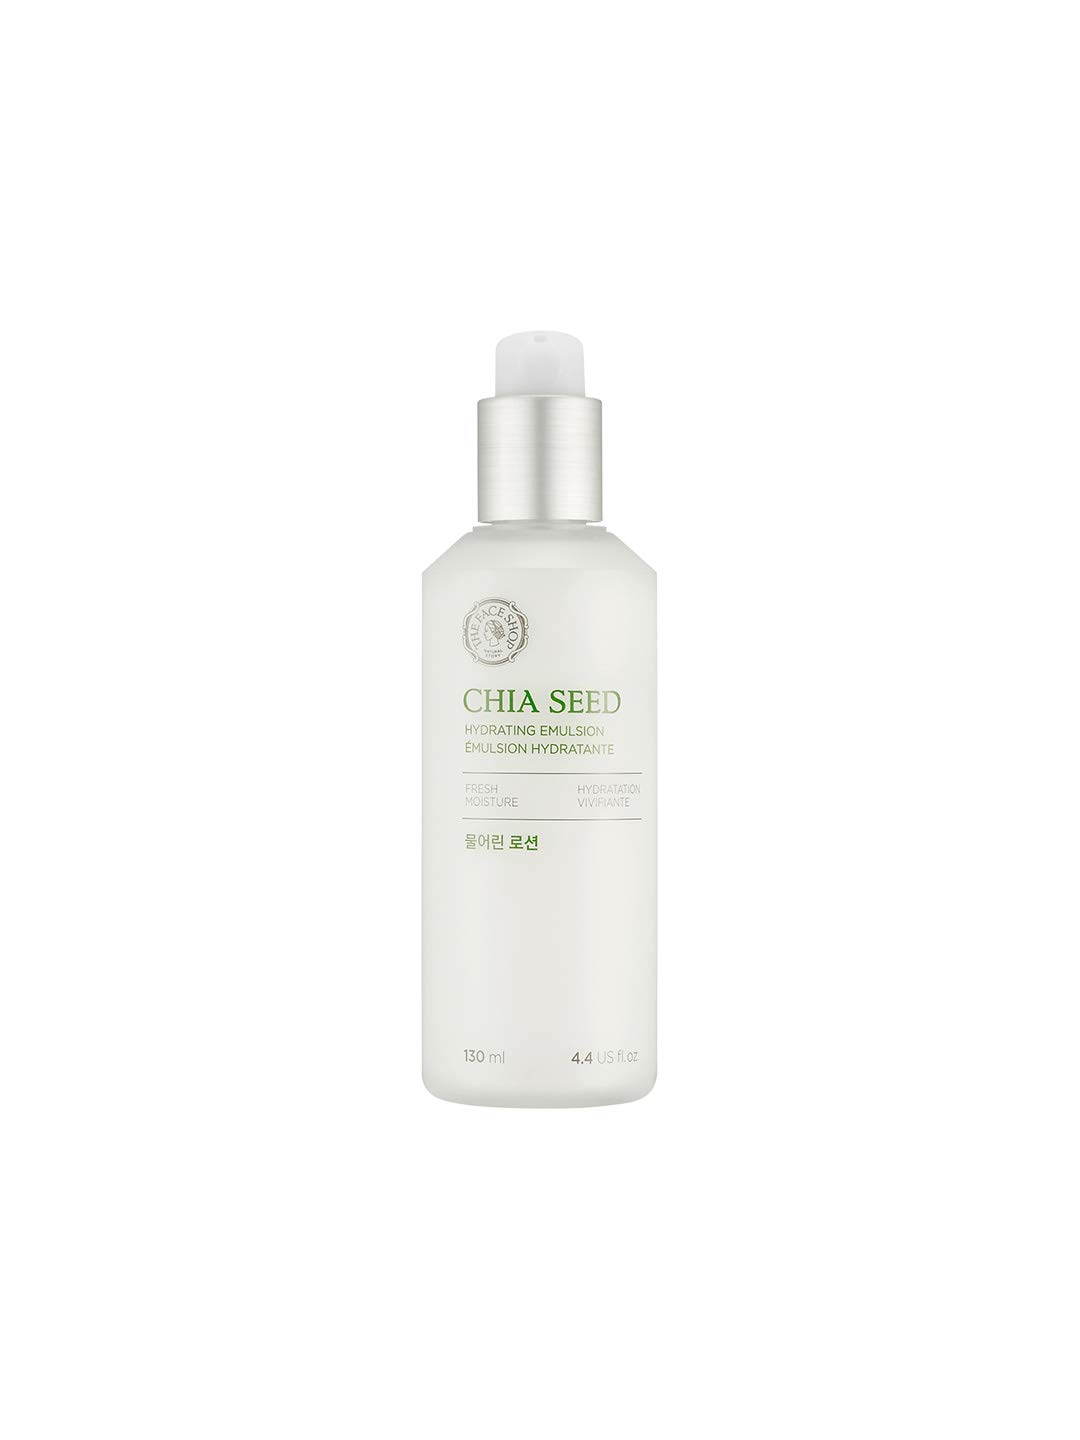 The Face Shop Chia Seed Hydrating Lotion